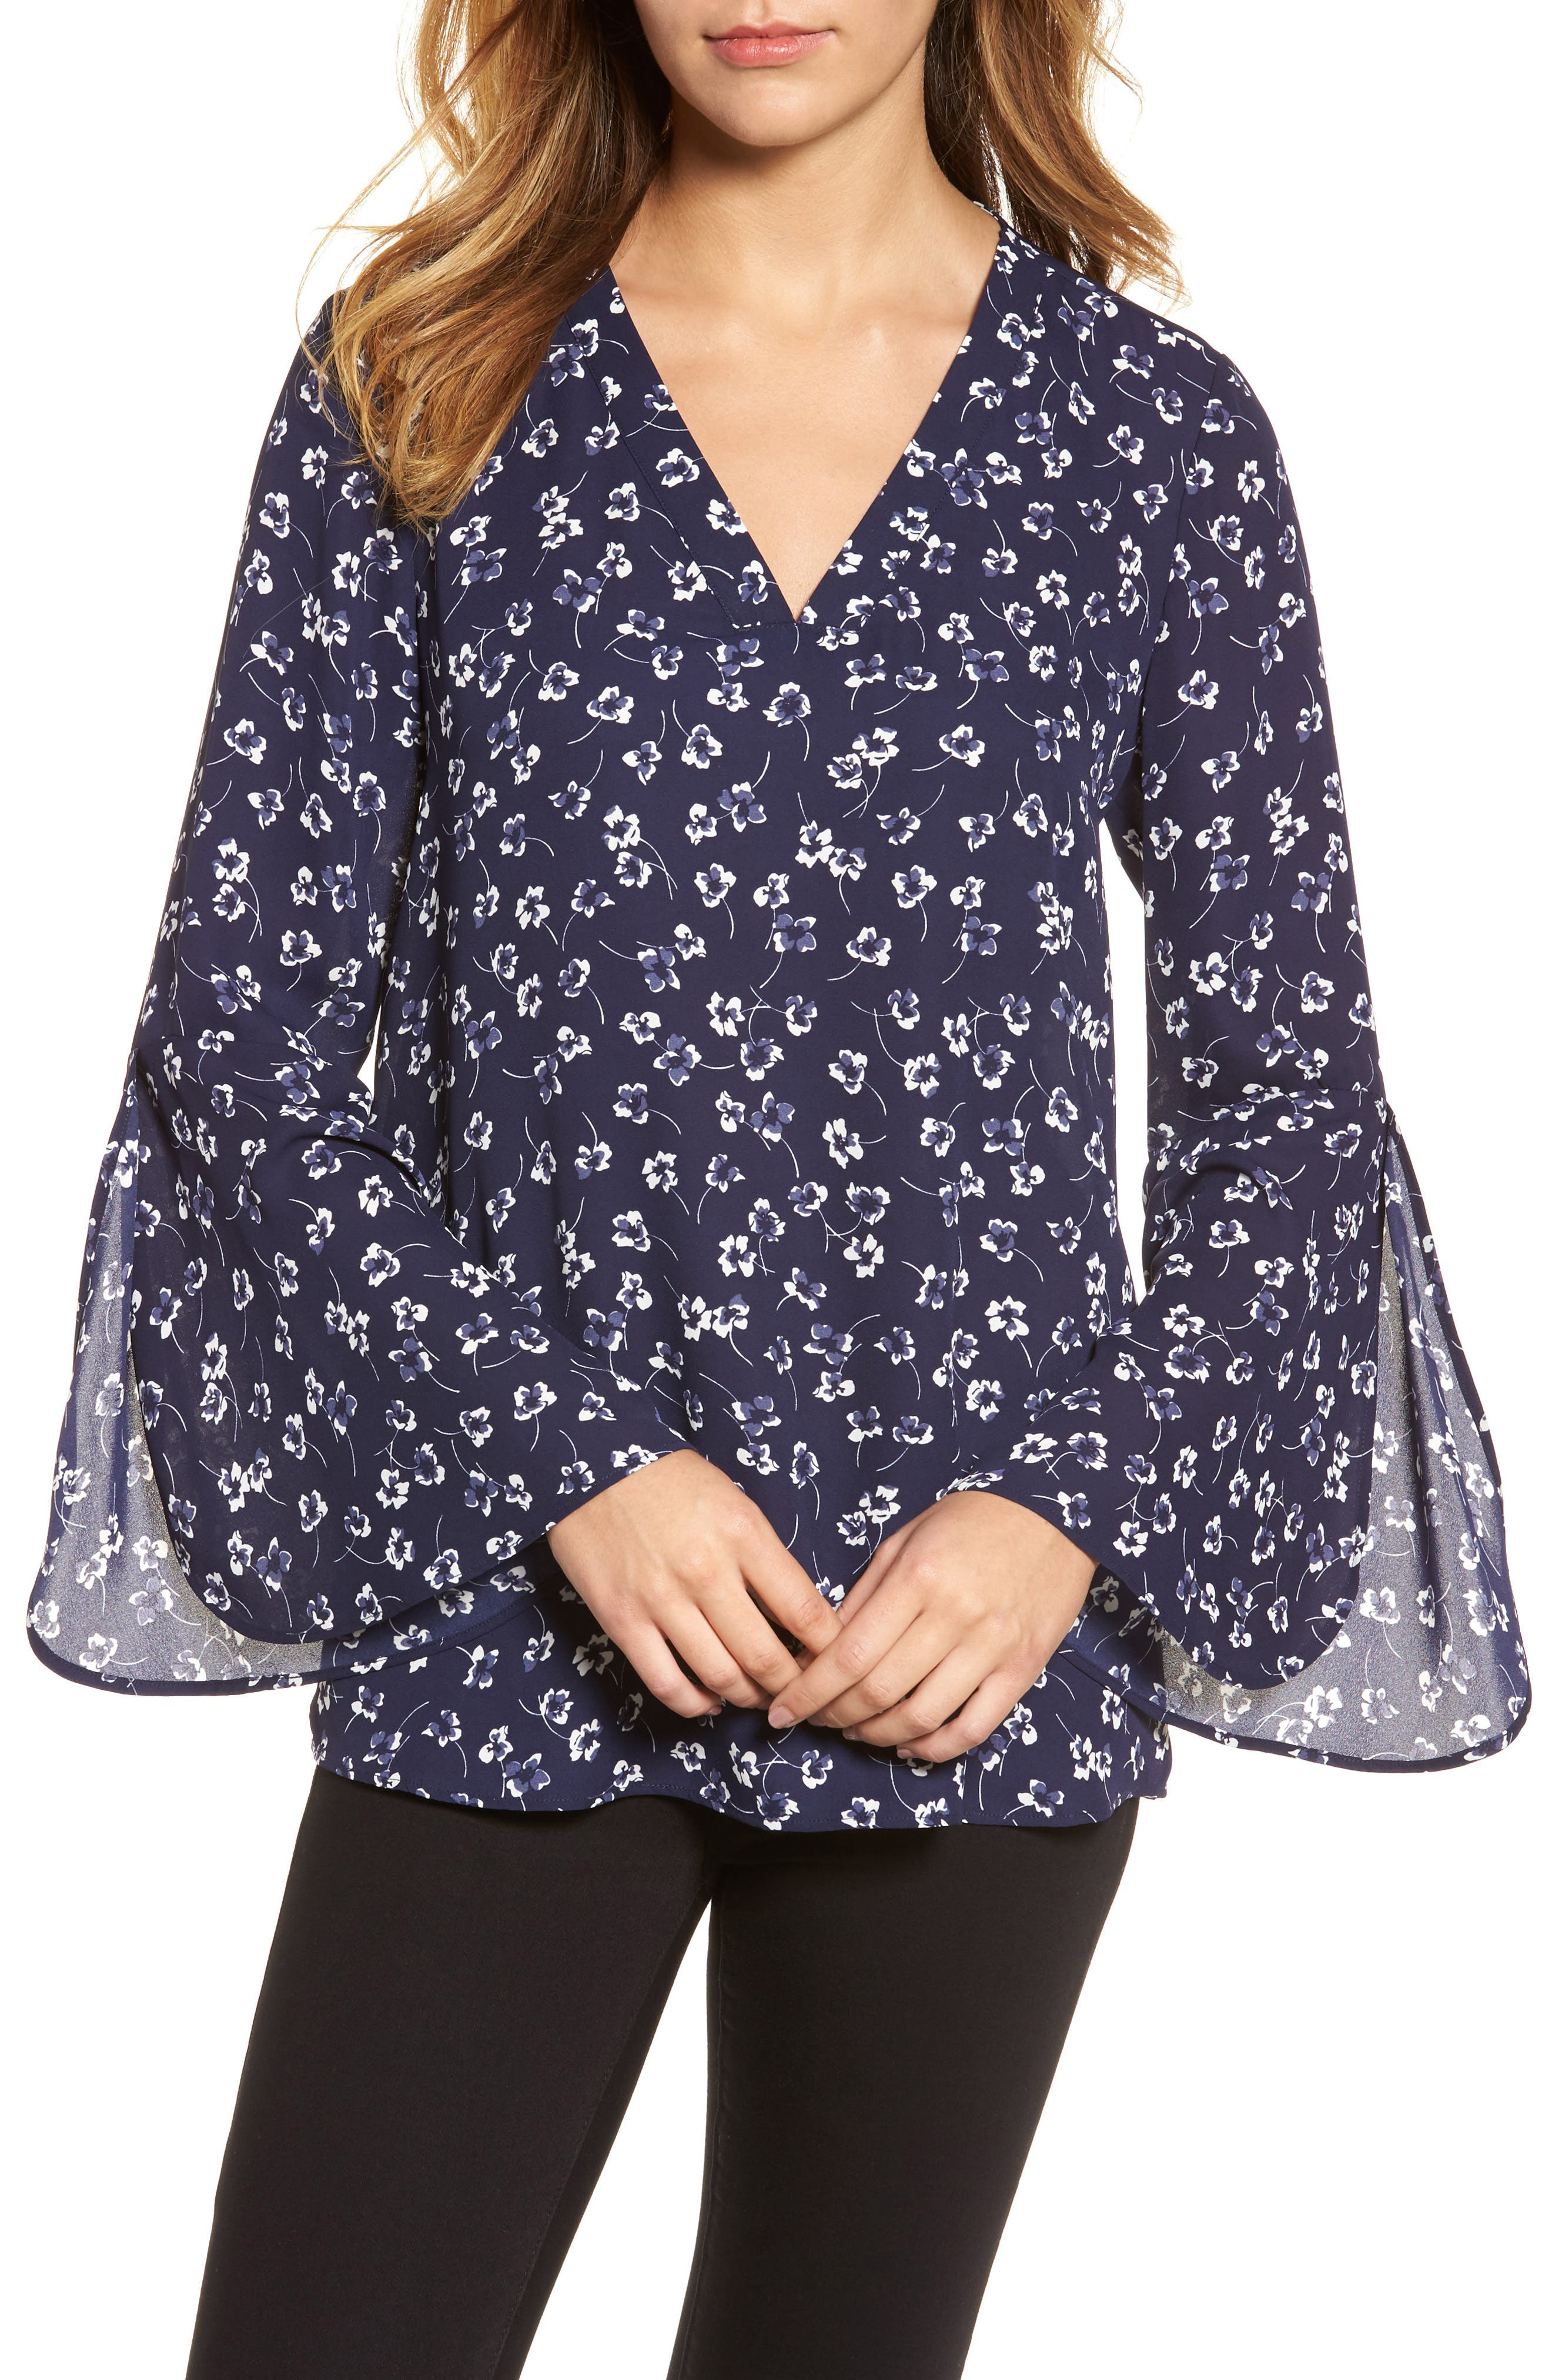 Main Image - Chaus Ditsy Floral Print Bell Sleeve Blouse